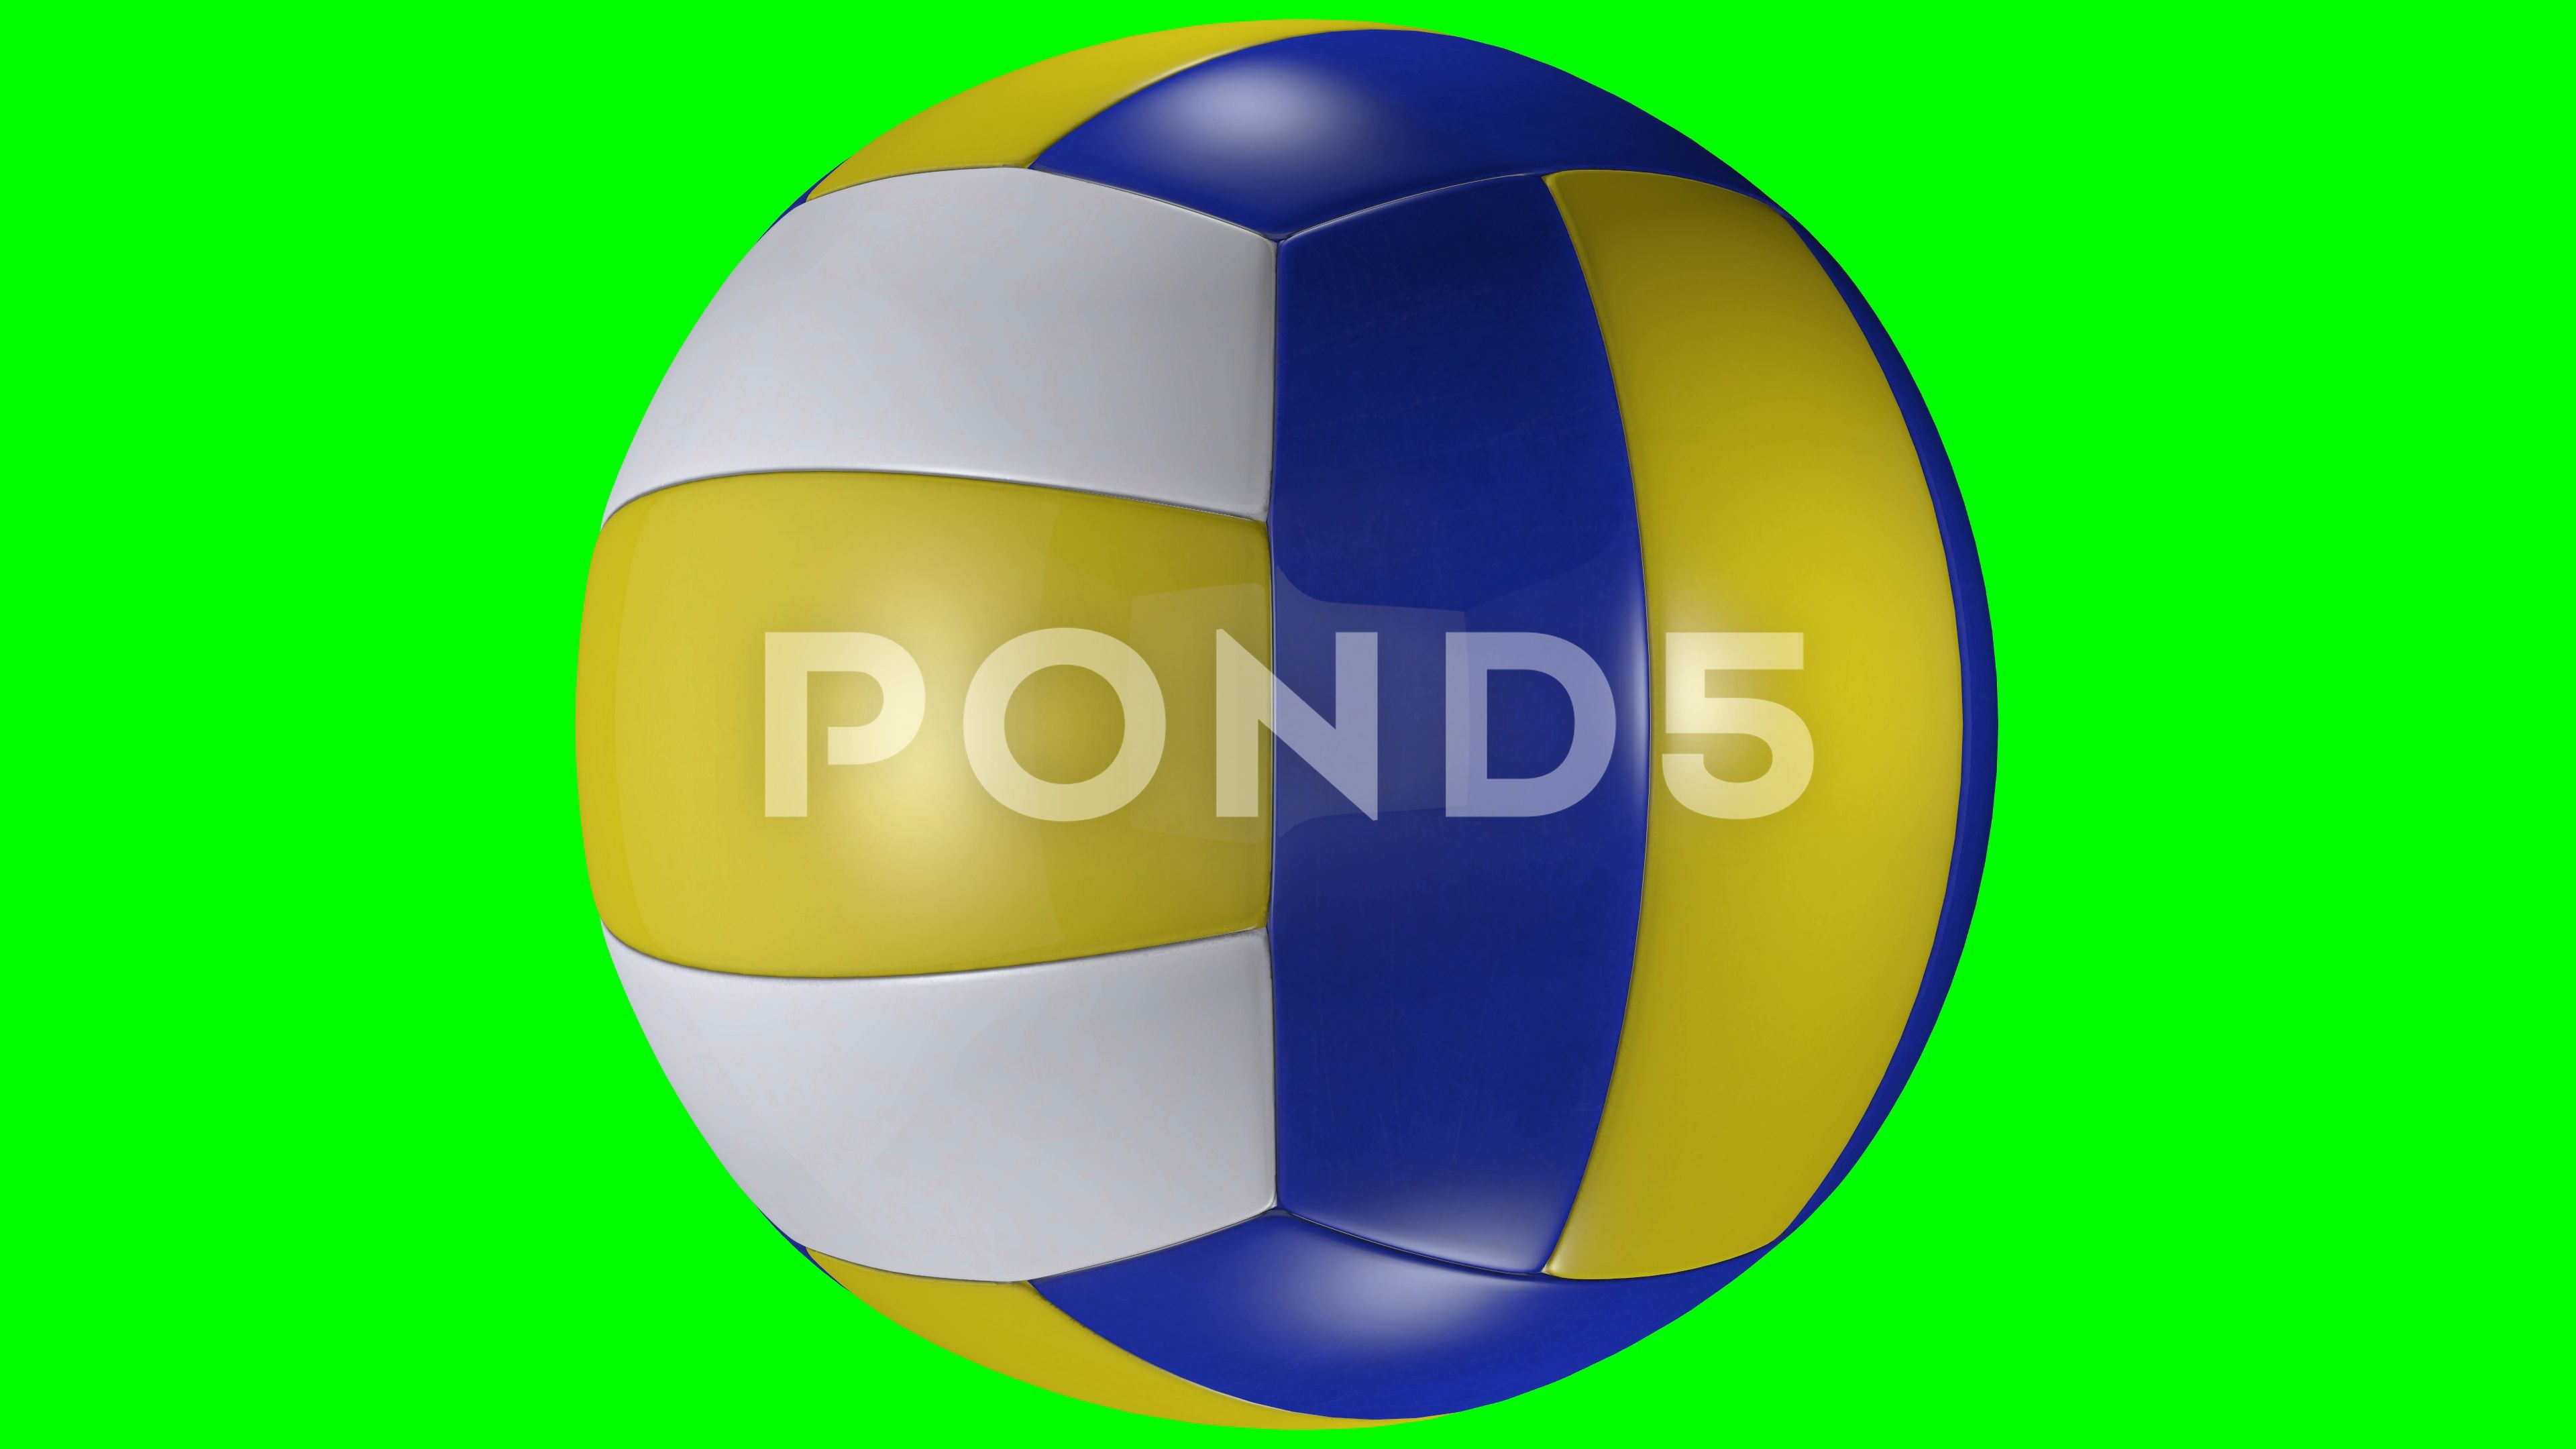 3d Animation Volleyball Ball Rotating On Green Screen Chroma Key Background Stock Footage Ad Rotating Green Chroma Key Backgrounds Greenscreen Chroma Key